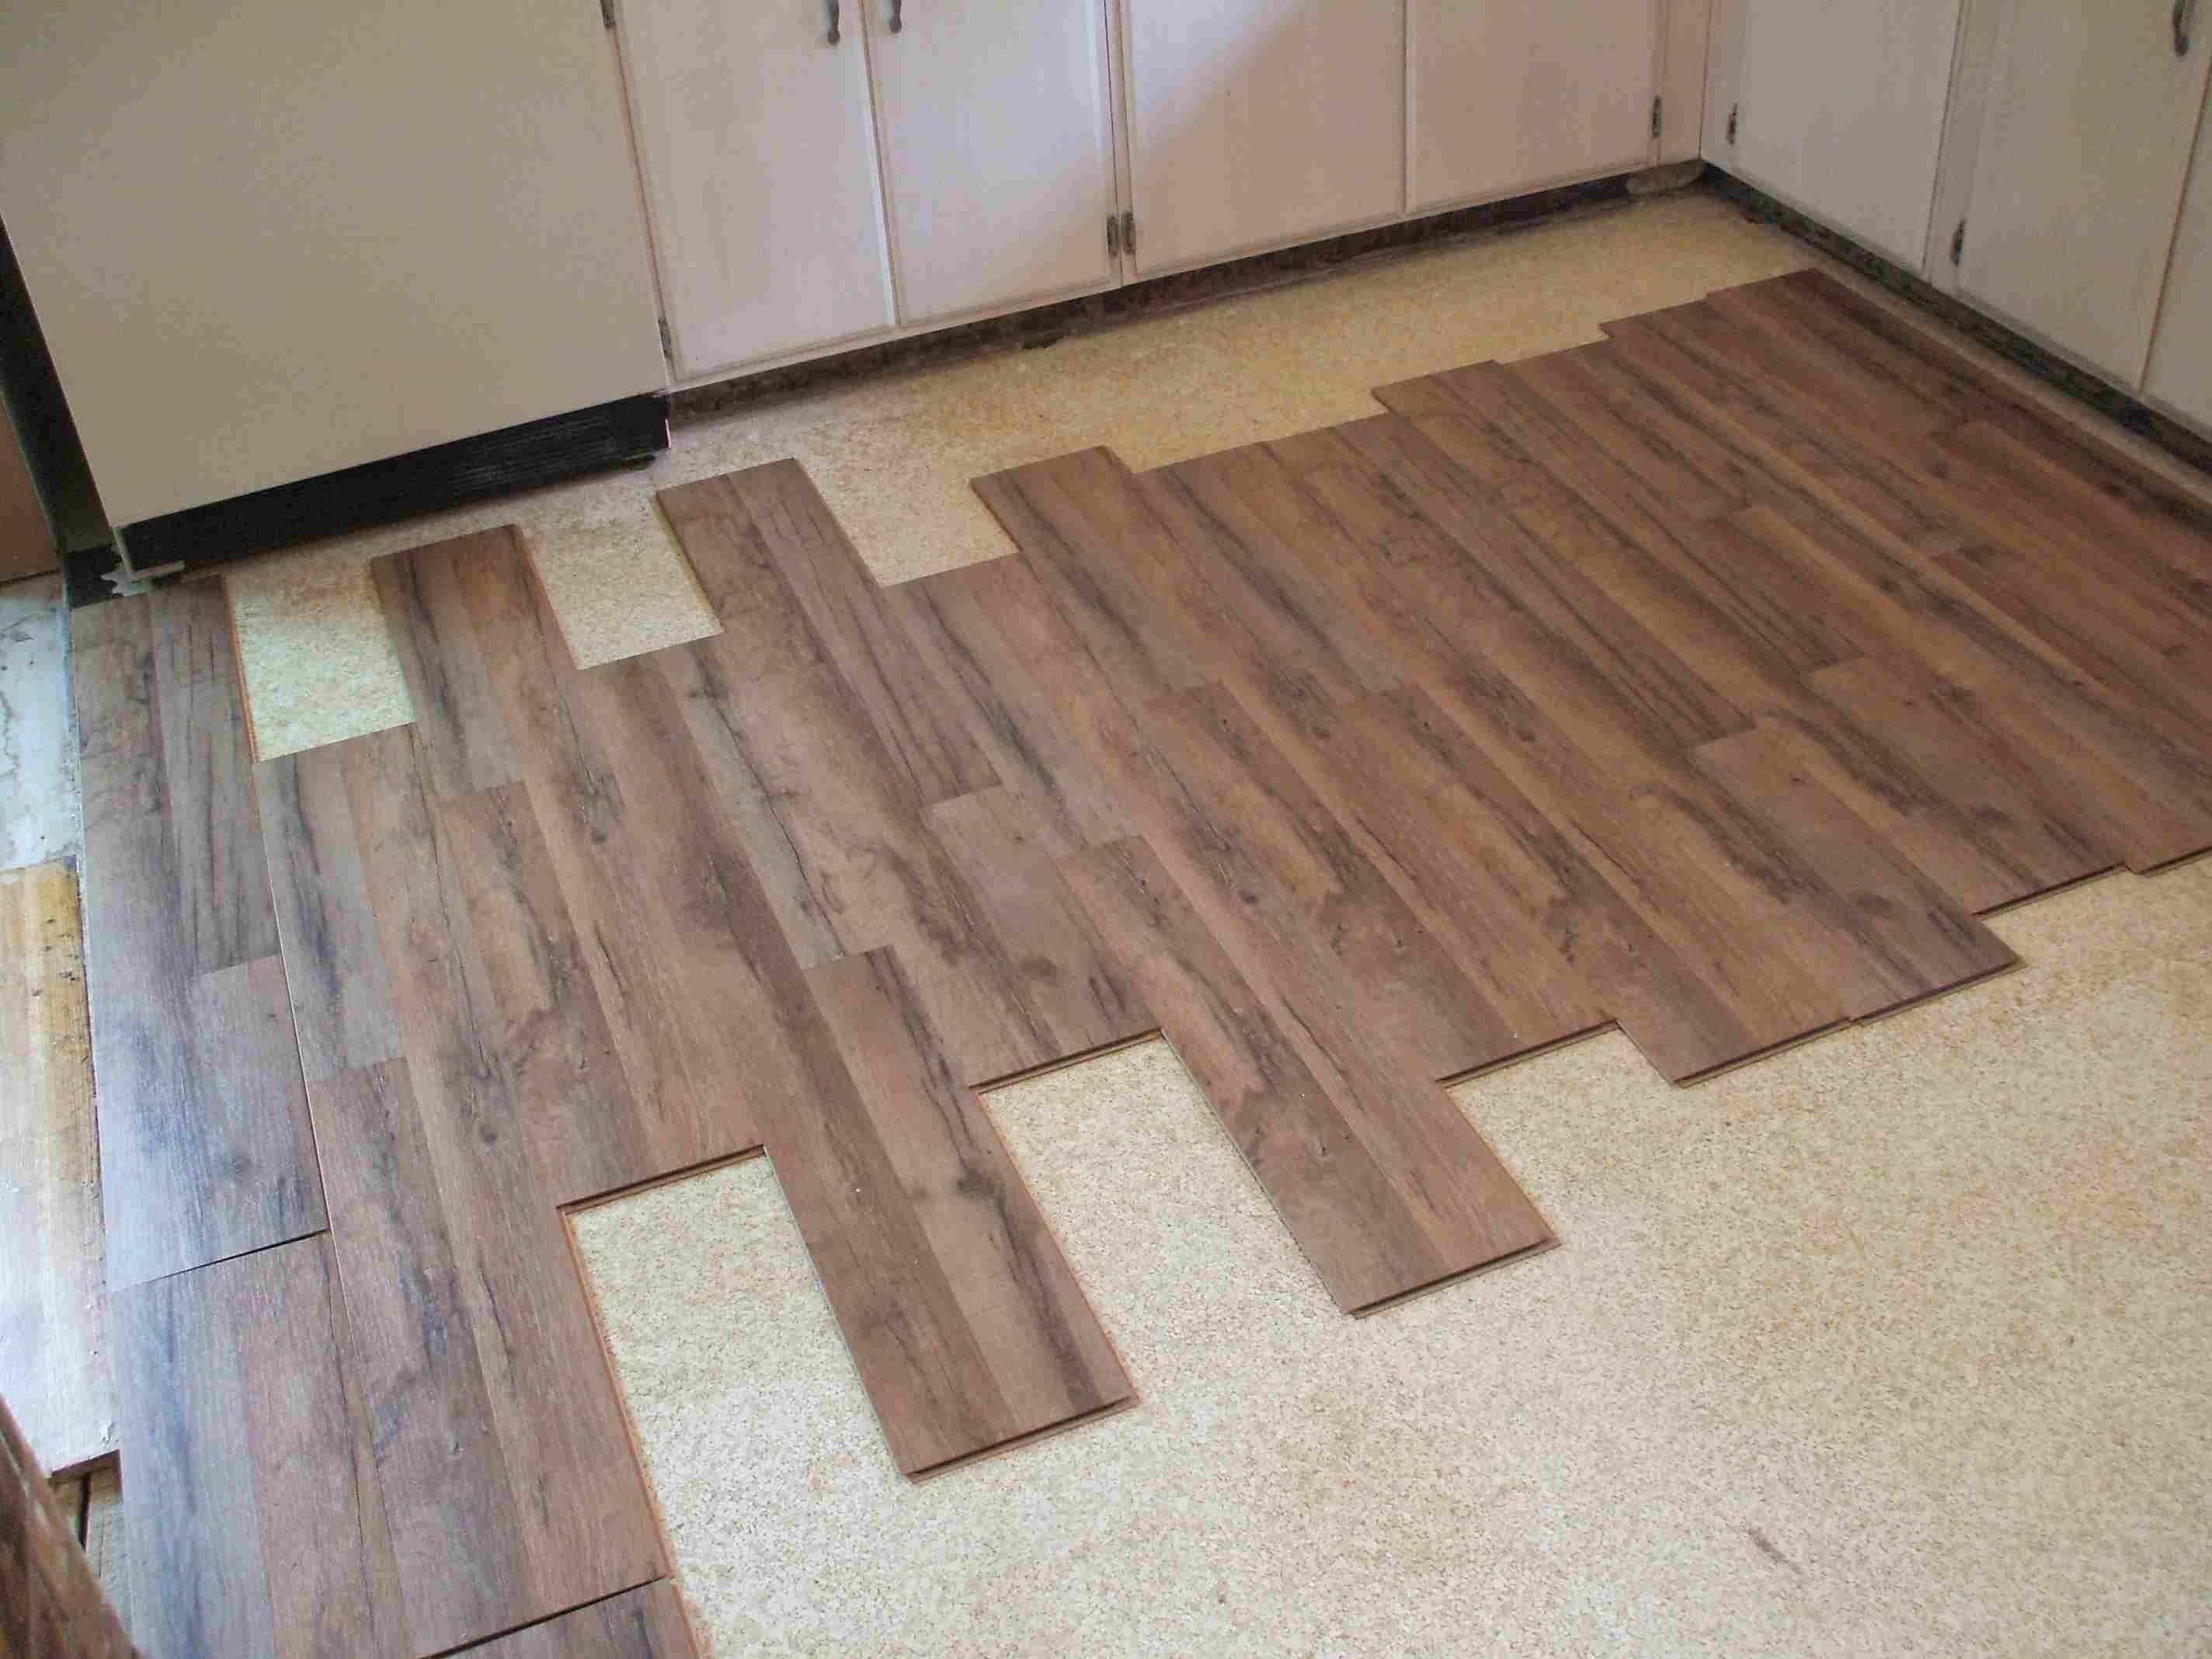 Awesome How To Calculate Square Feet For Laminate Flooring And Description In 2020 Installing Laminate Wood Flooring Laminate Flooring On Stairs Vinyl Plank Flooring